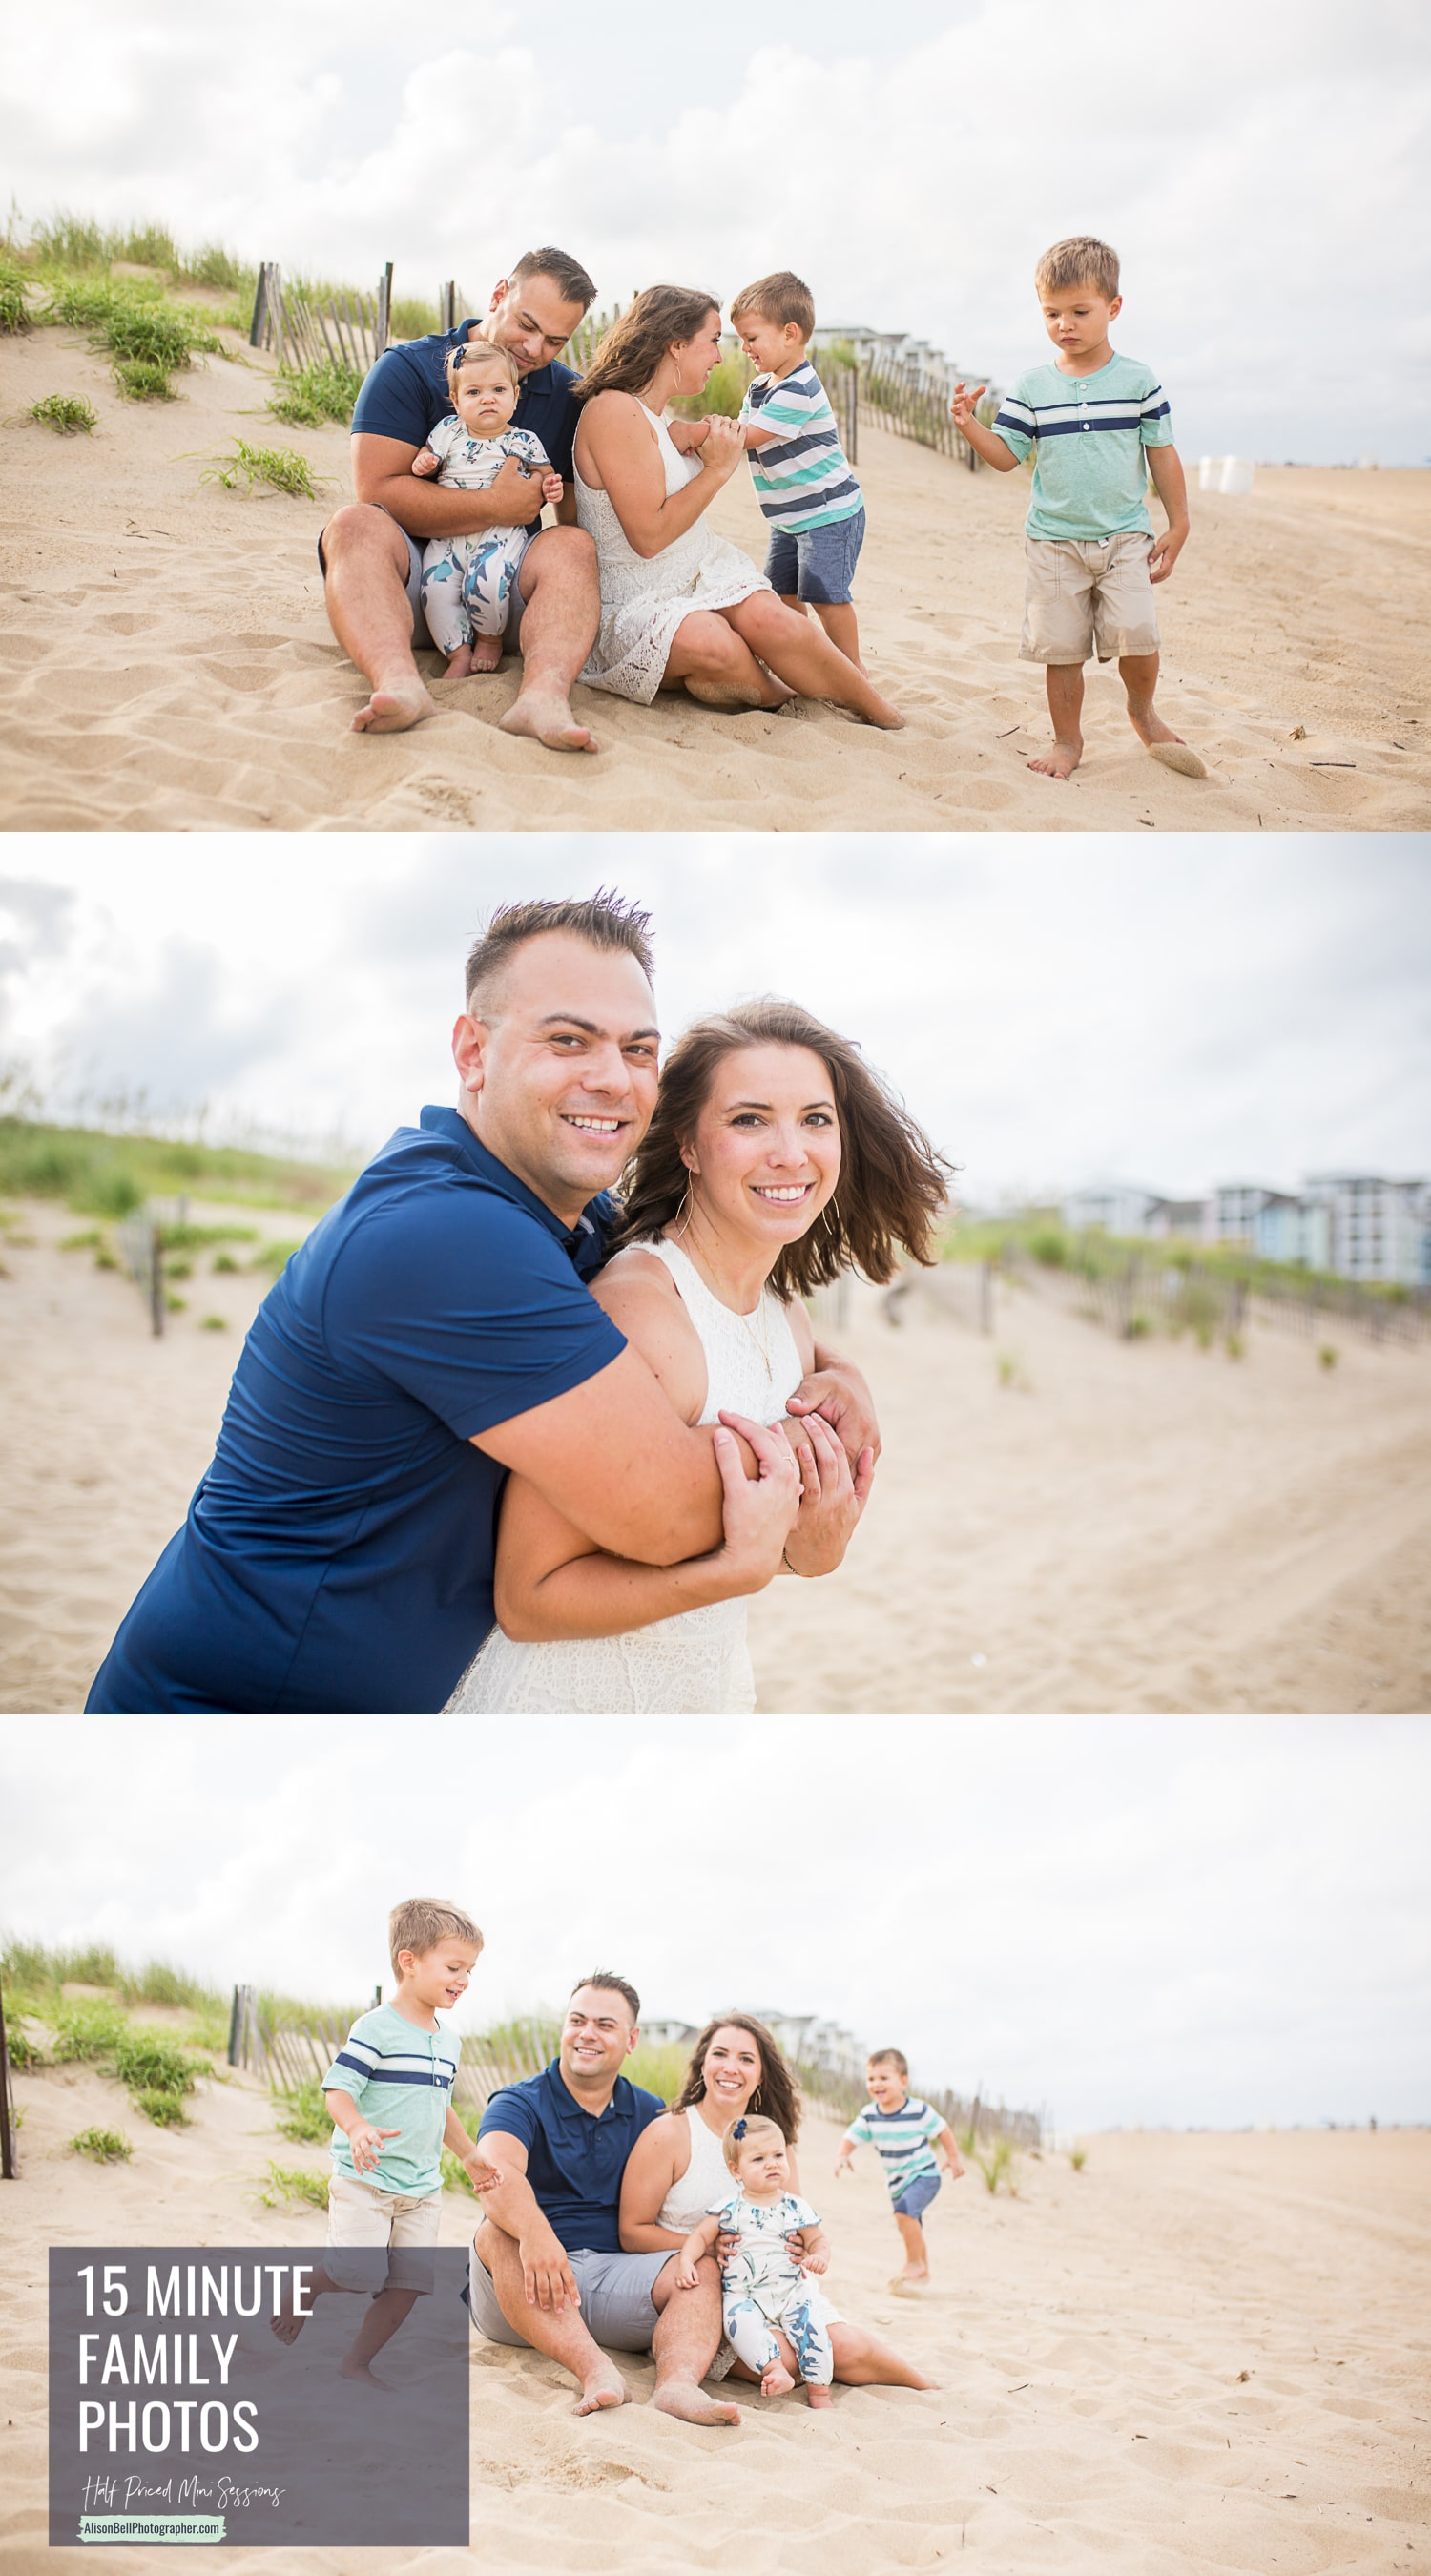 Sandbridge beach family photo mini session by alison bell photographer in Virginia Beach